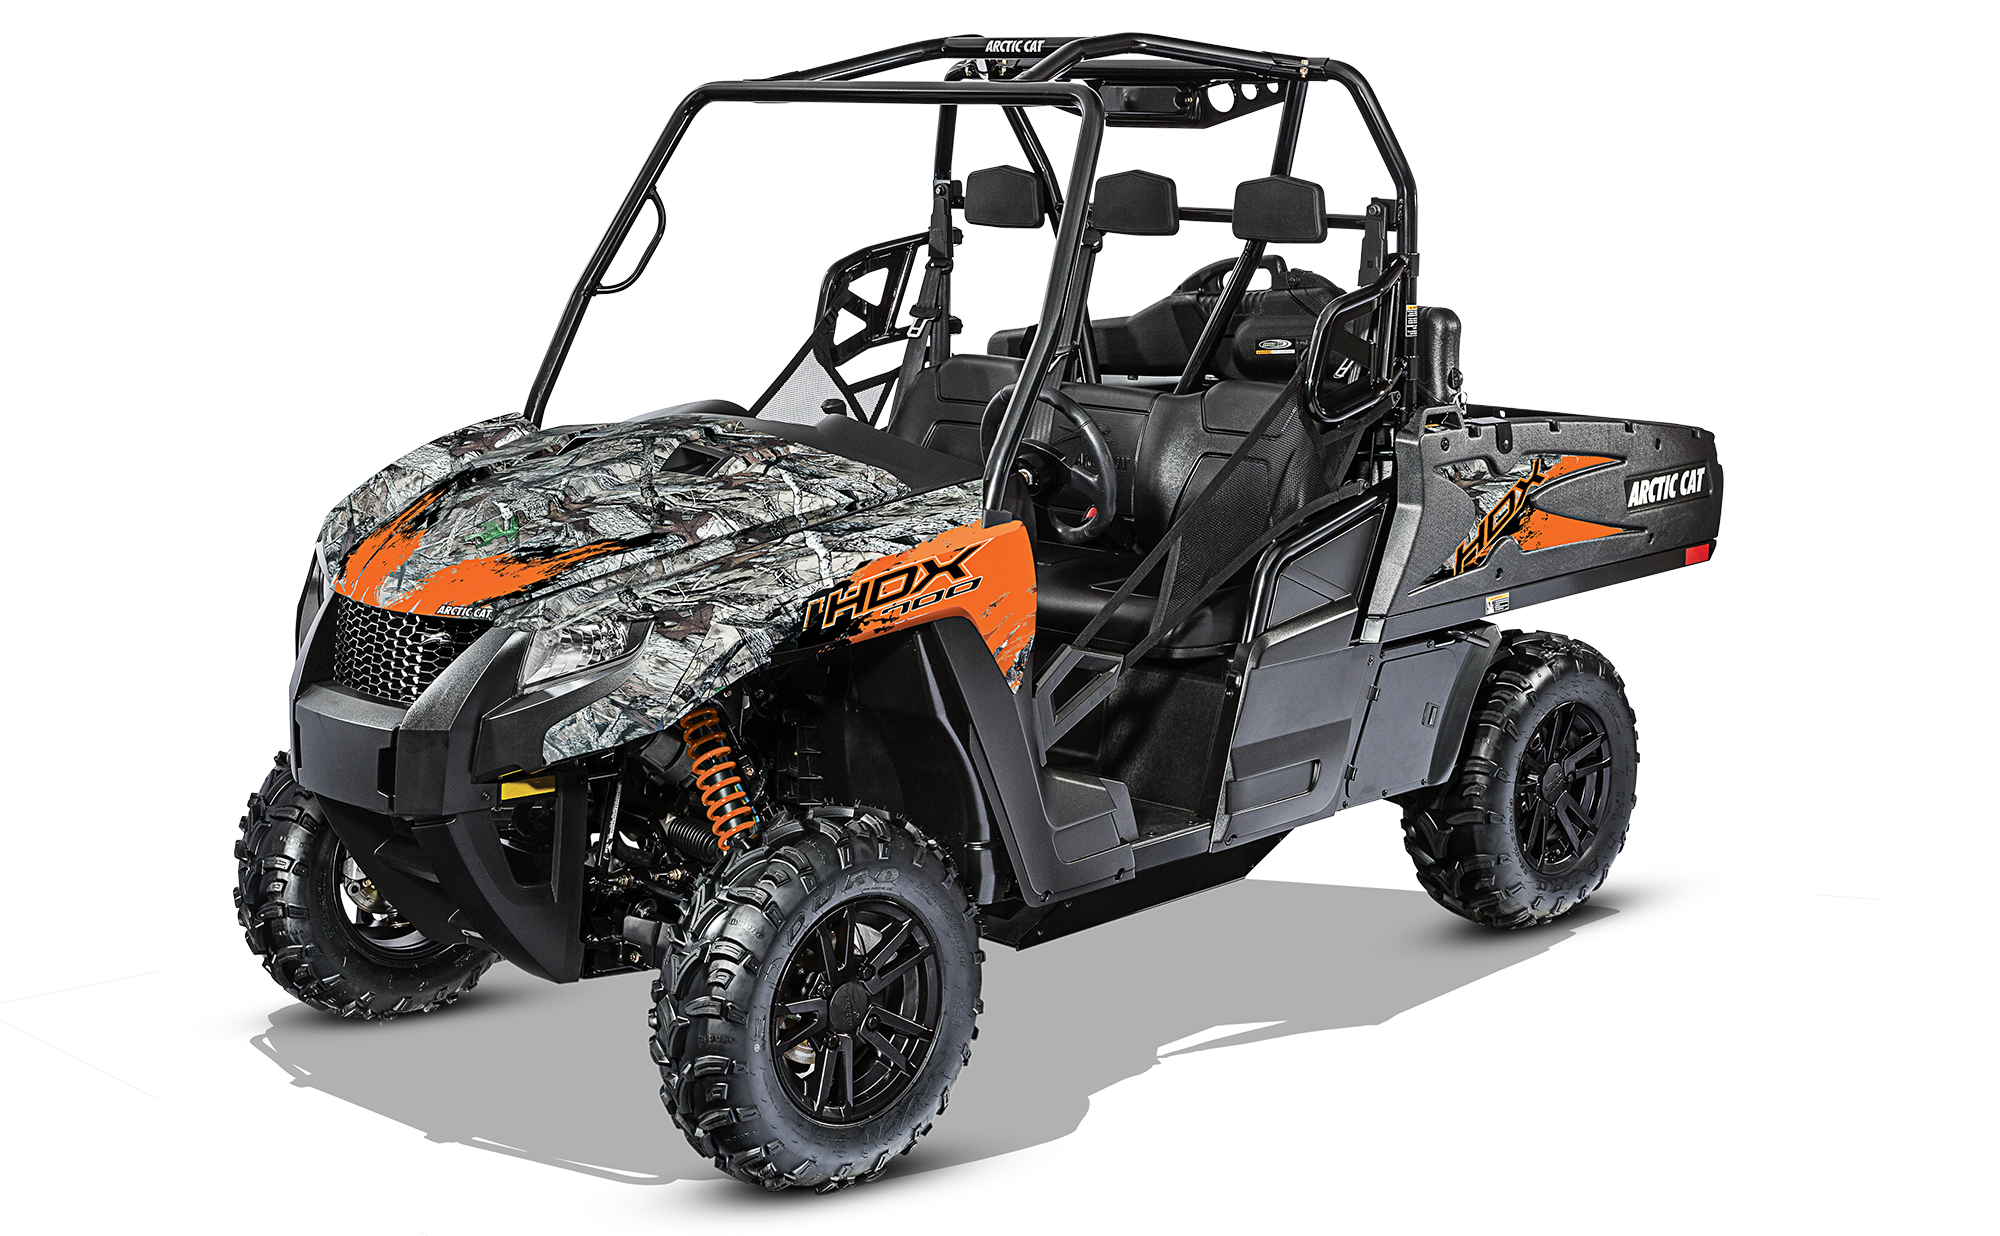 SideBySide Models Arctic, Atv, All terrain tyres